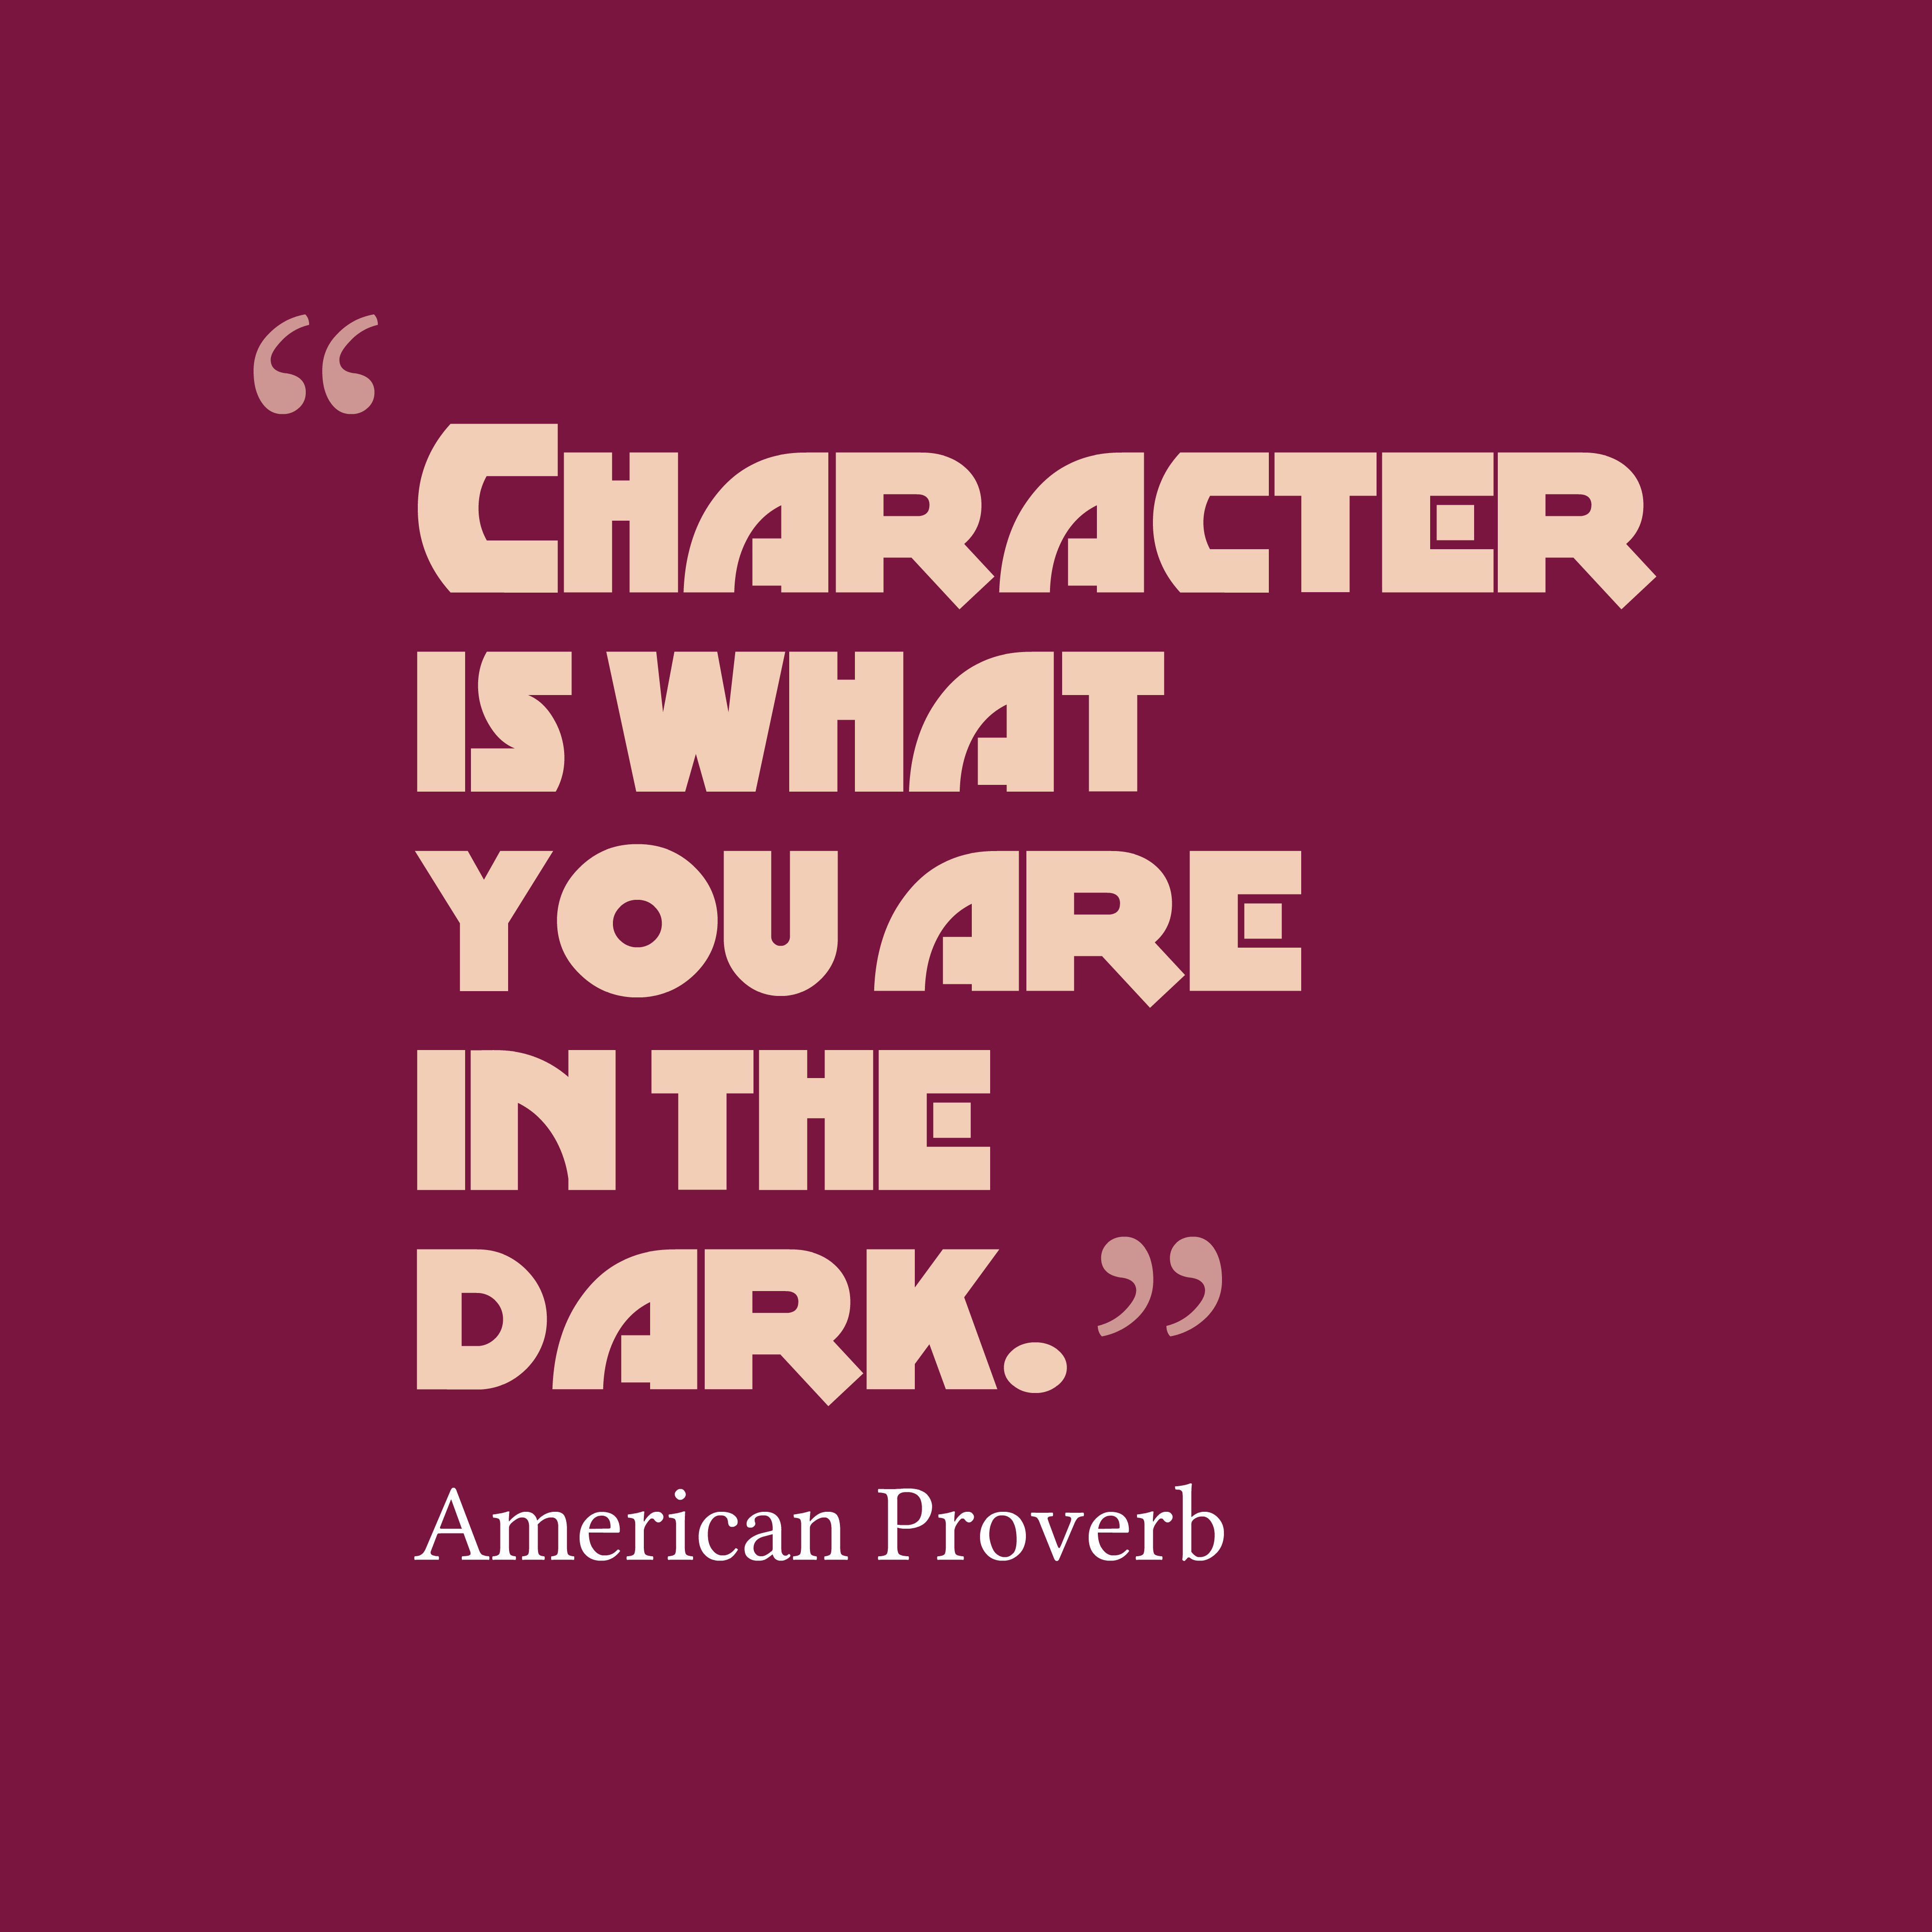 Character Quotes: Get High Resolution Using Text From American Proverb About